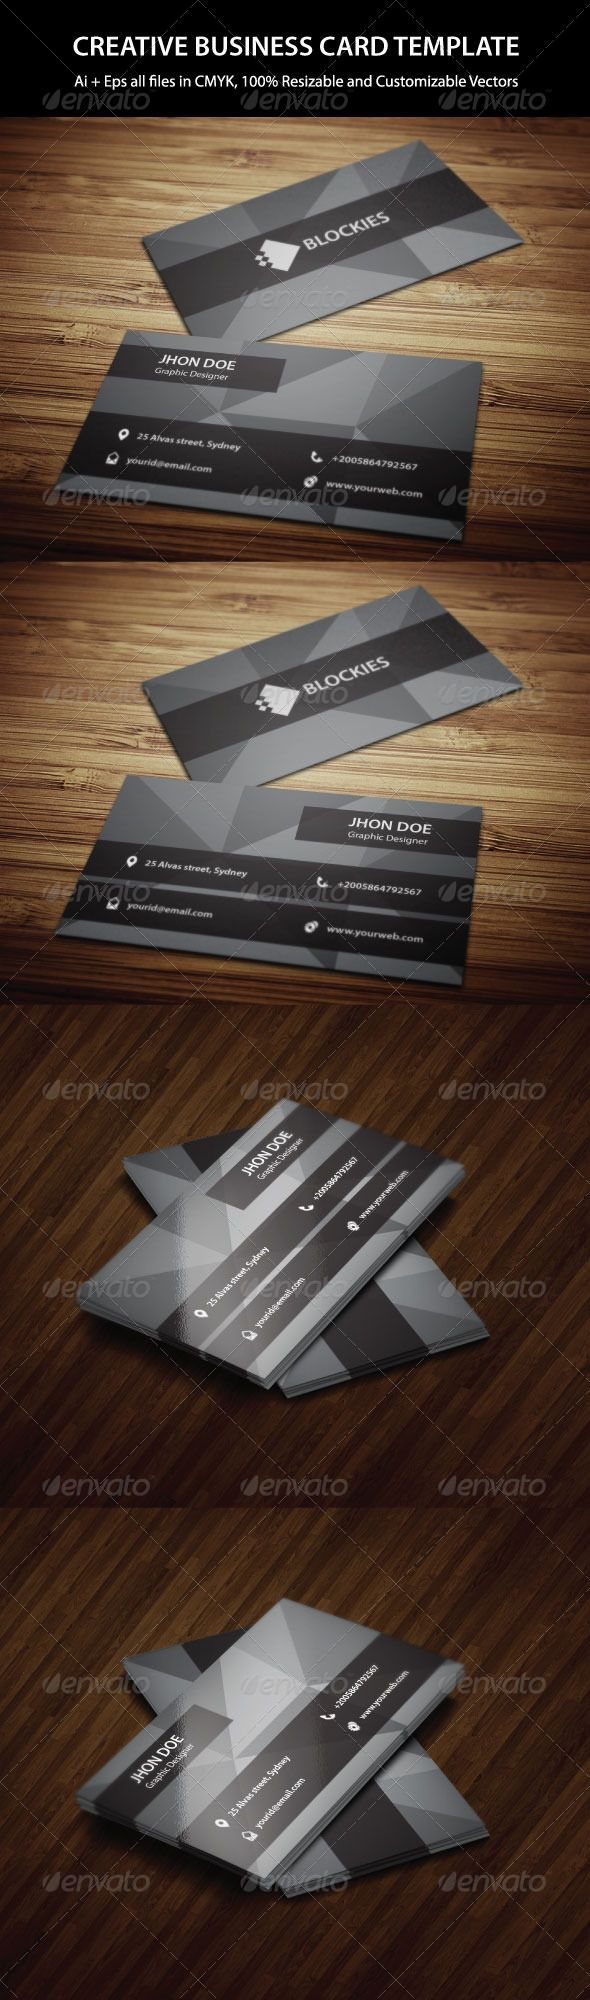 86 best print templates images on pinterest adobe business card 86 best print templates images on pinterest adobe business card logo and creative illustration magicingreecefo Image collections